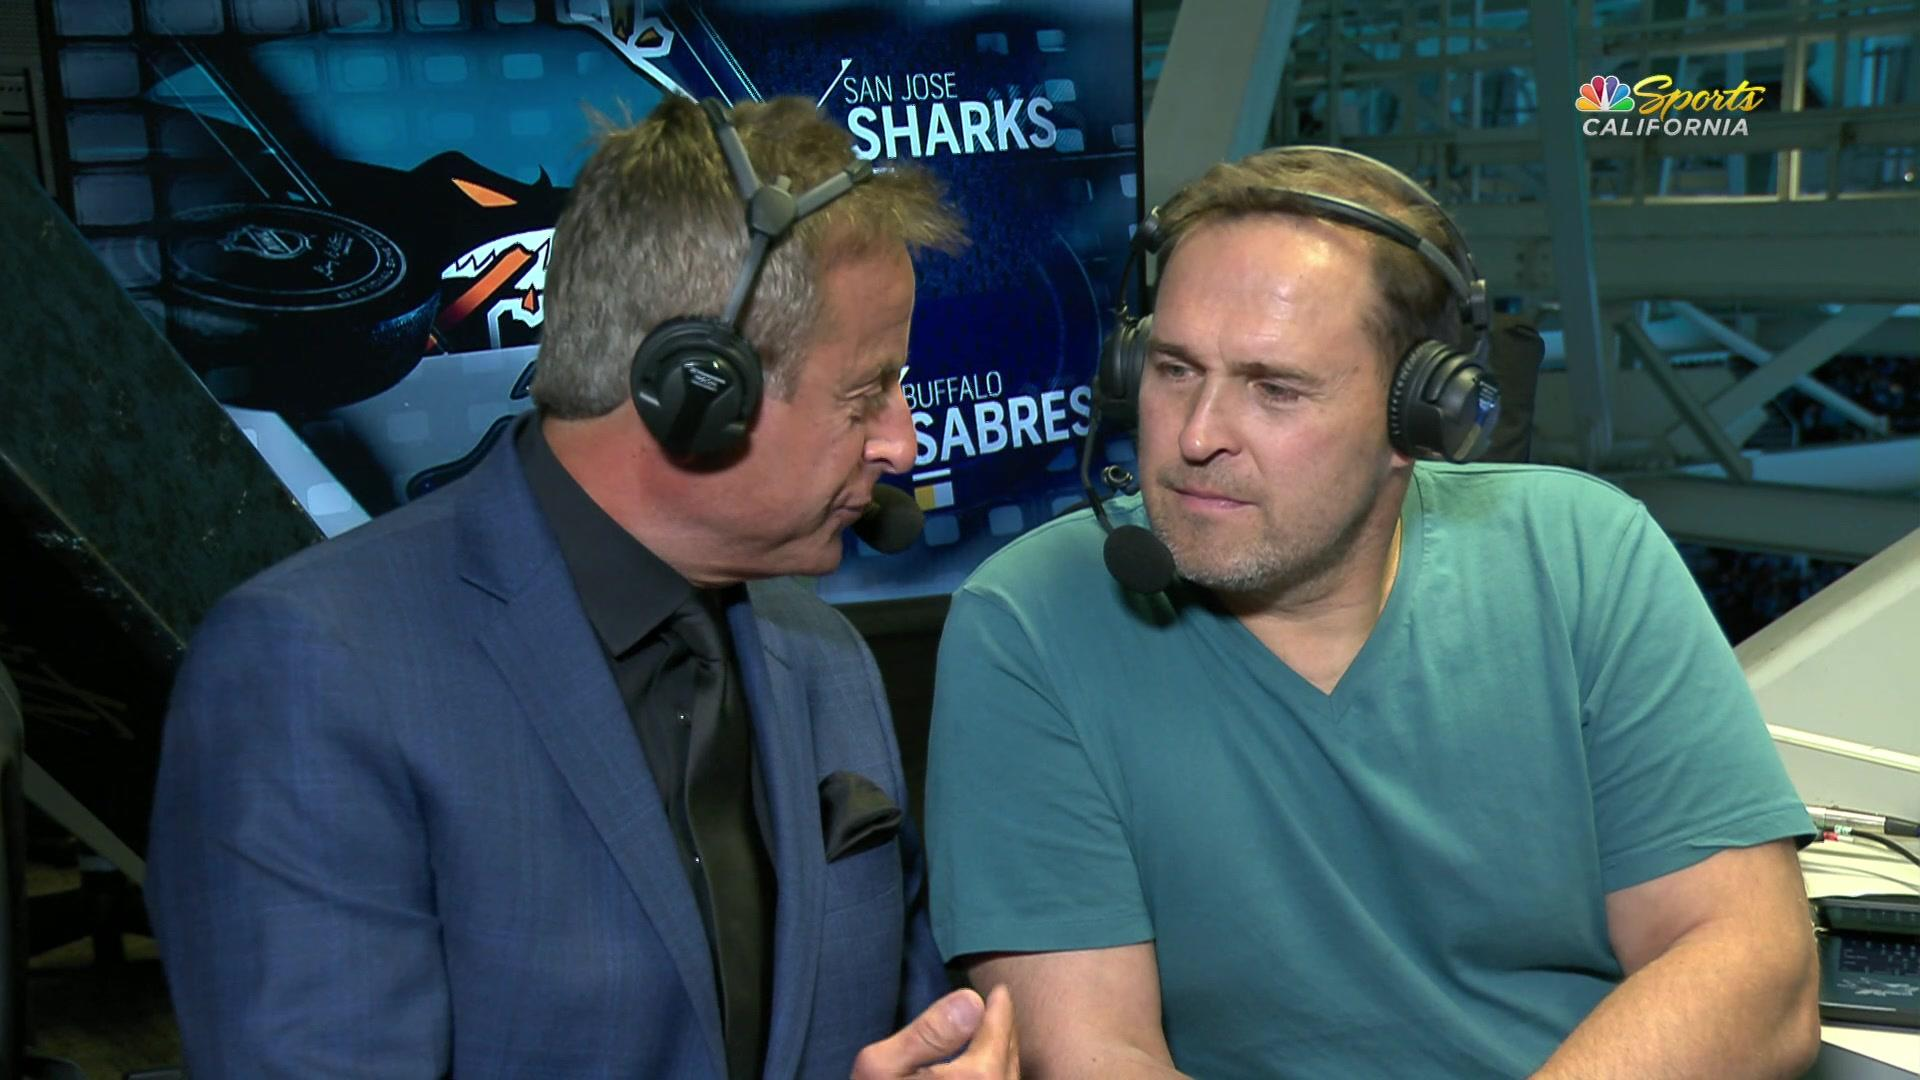 Sharks icon Arturs Irbe reflects on his journey to NHL